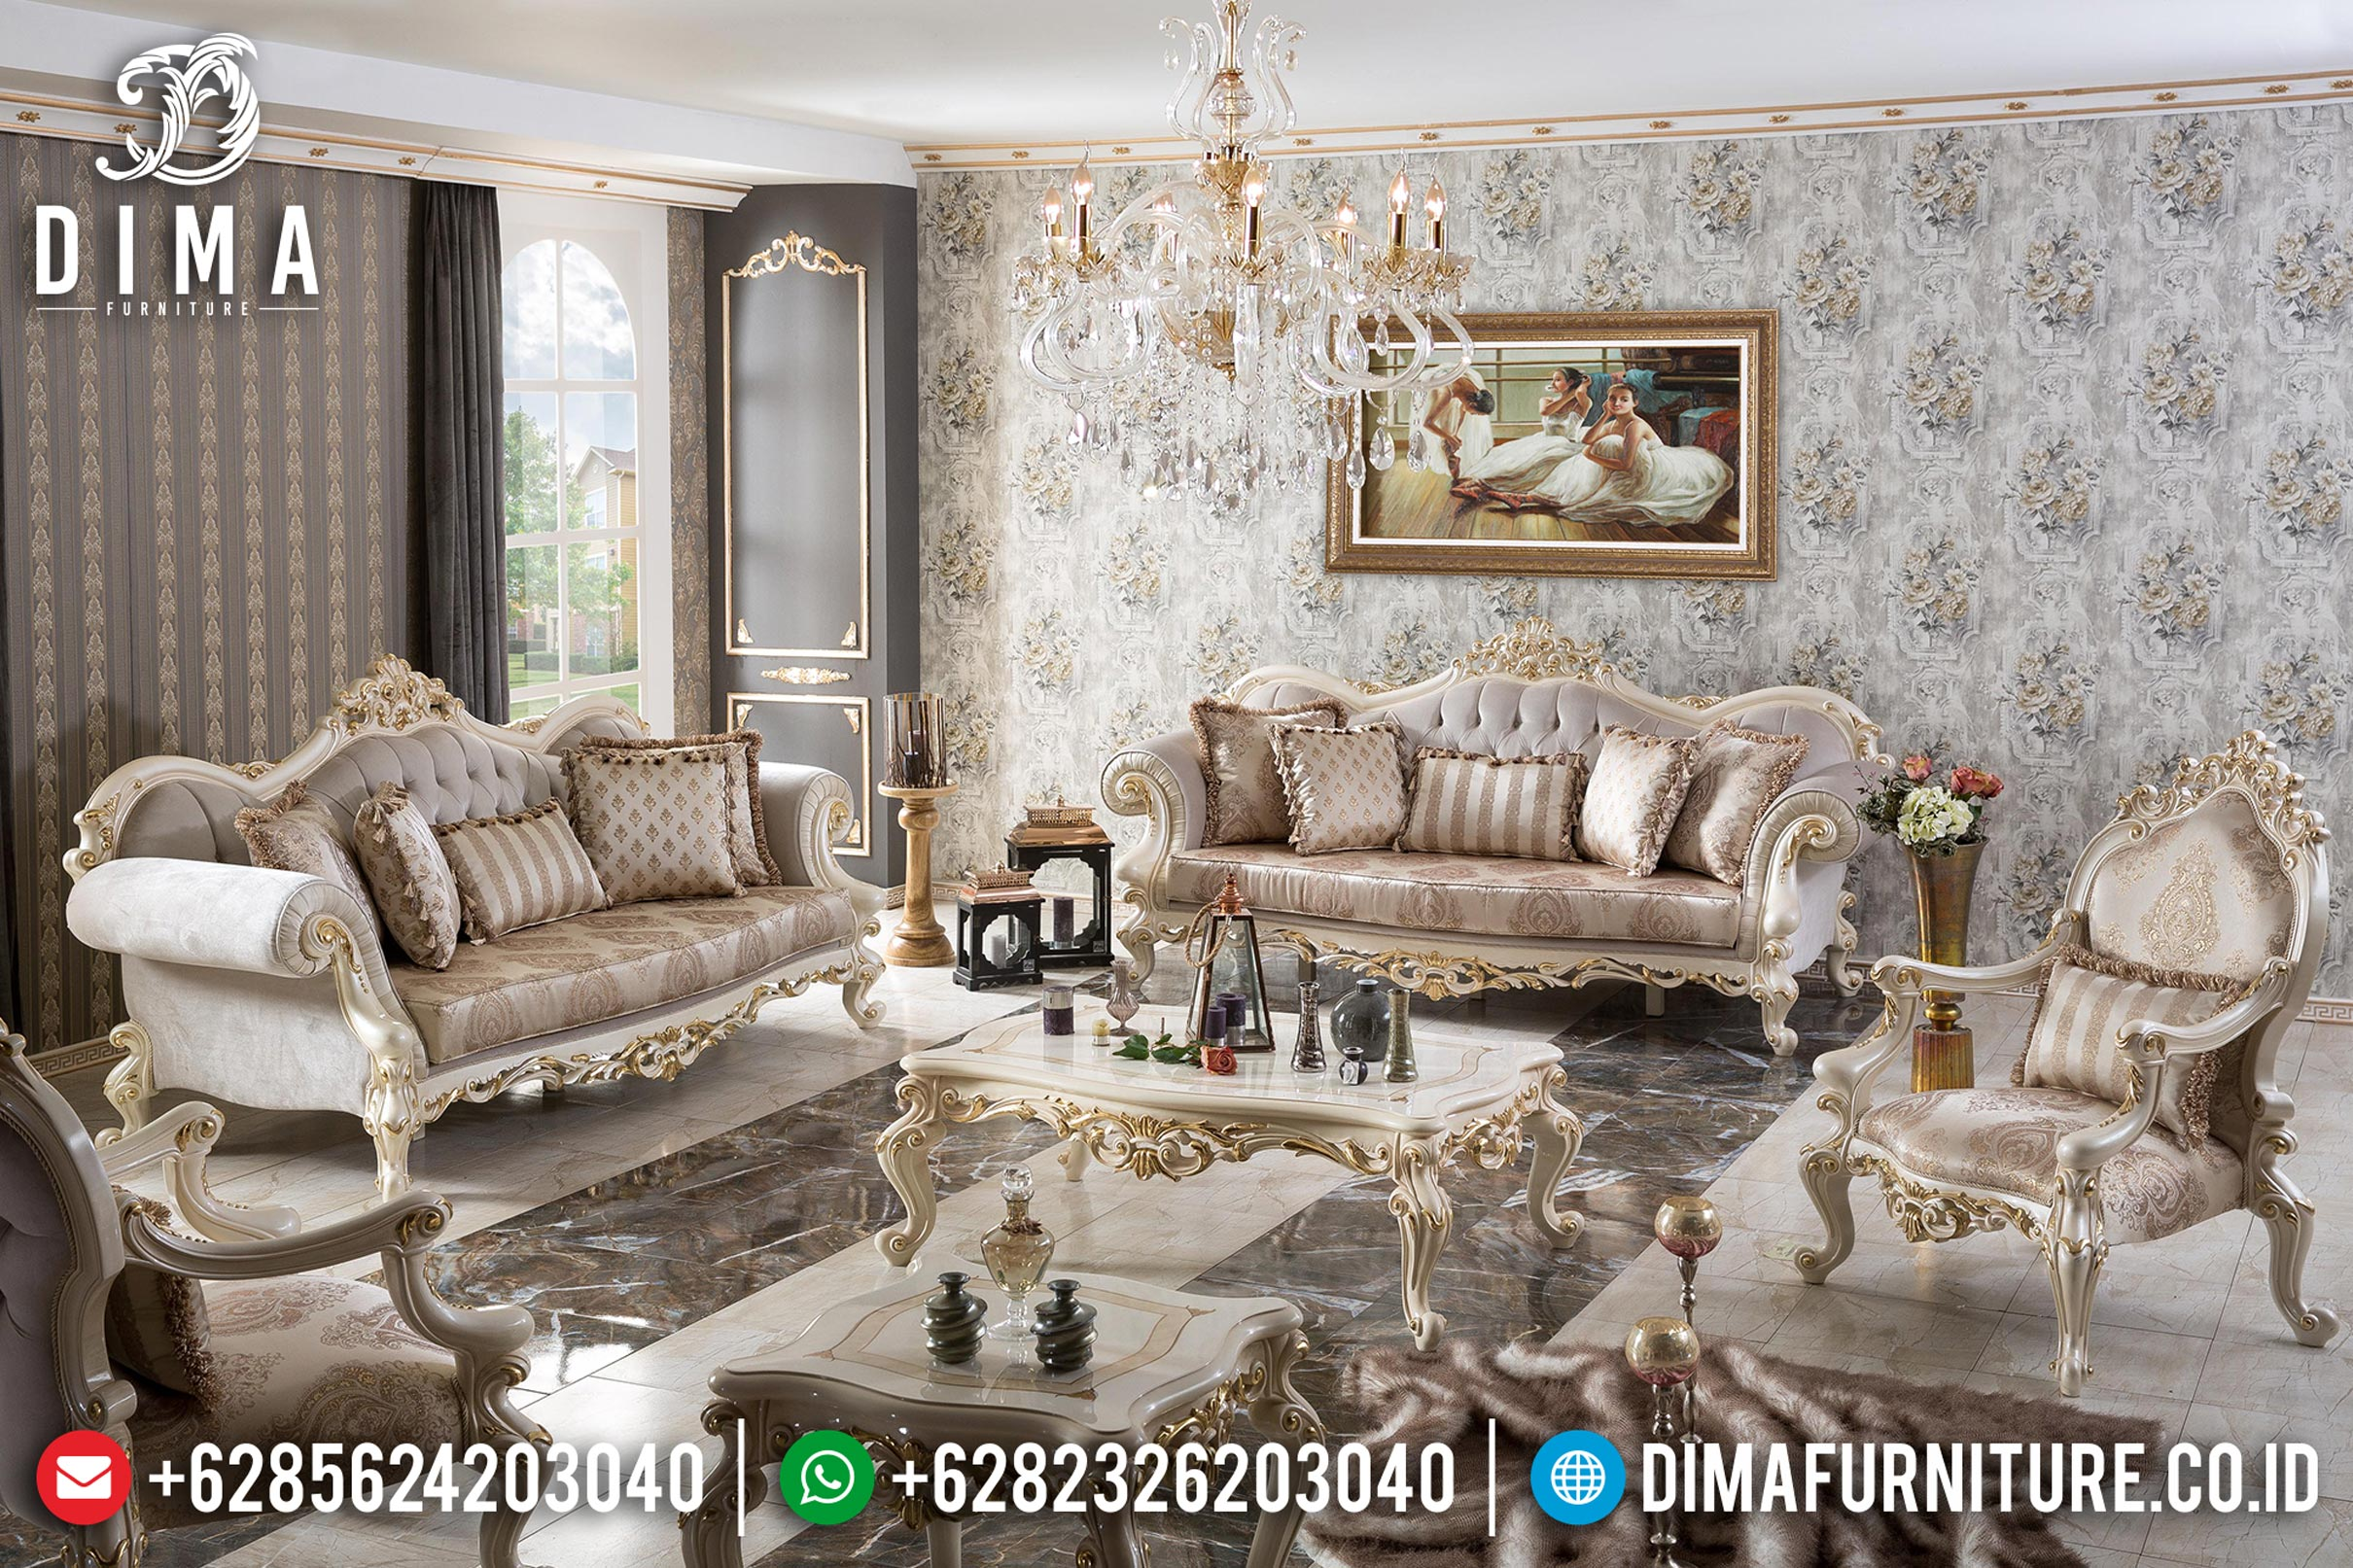 Model Sofa Tamu Jepara 2019-2020 001 Dima Furniture Jepara